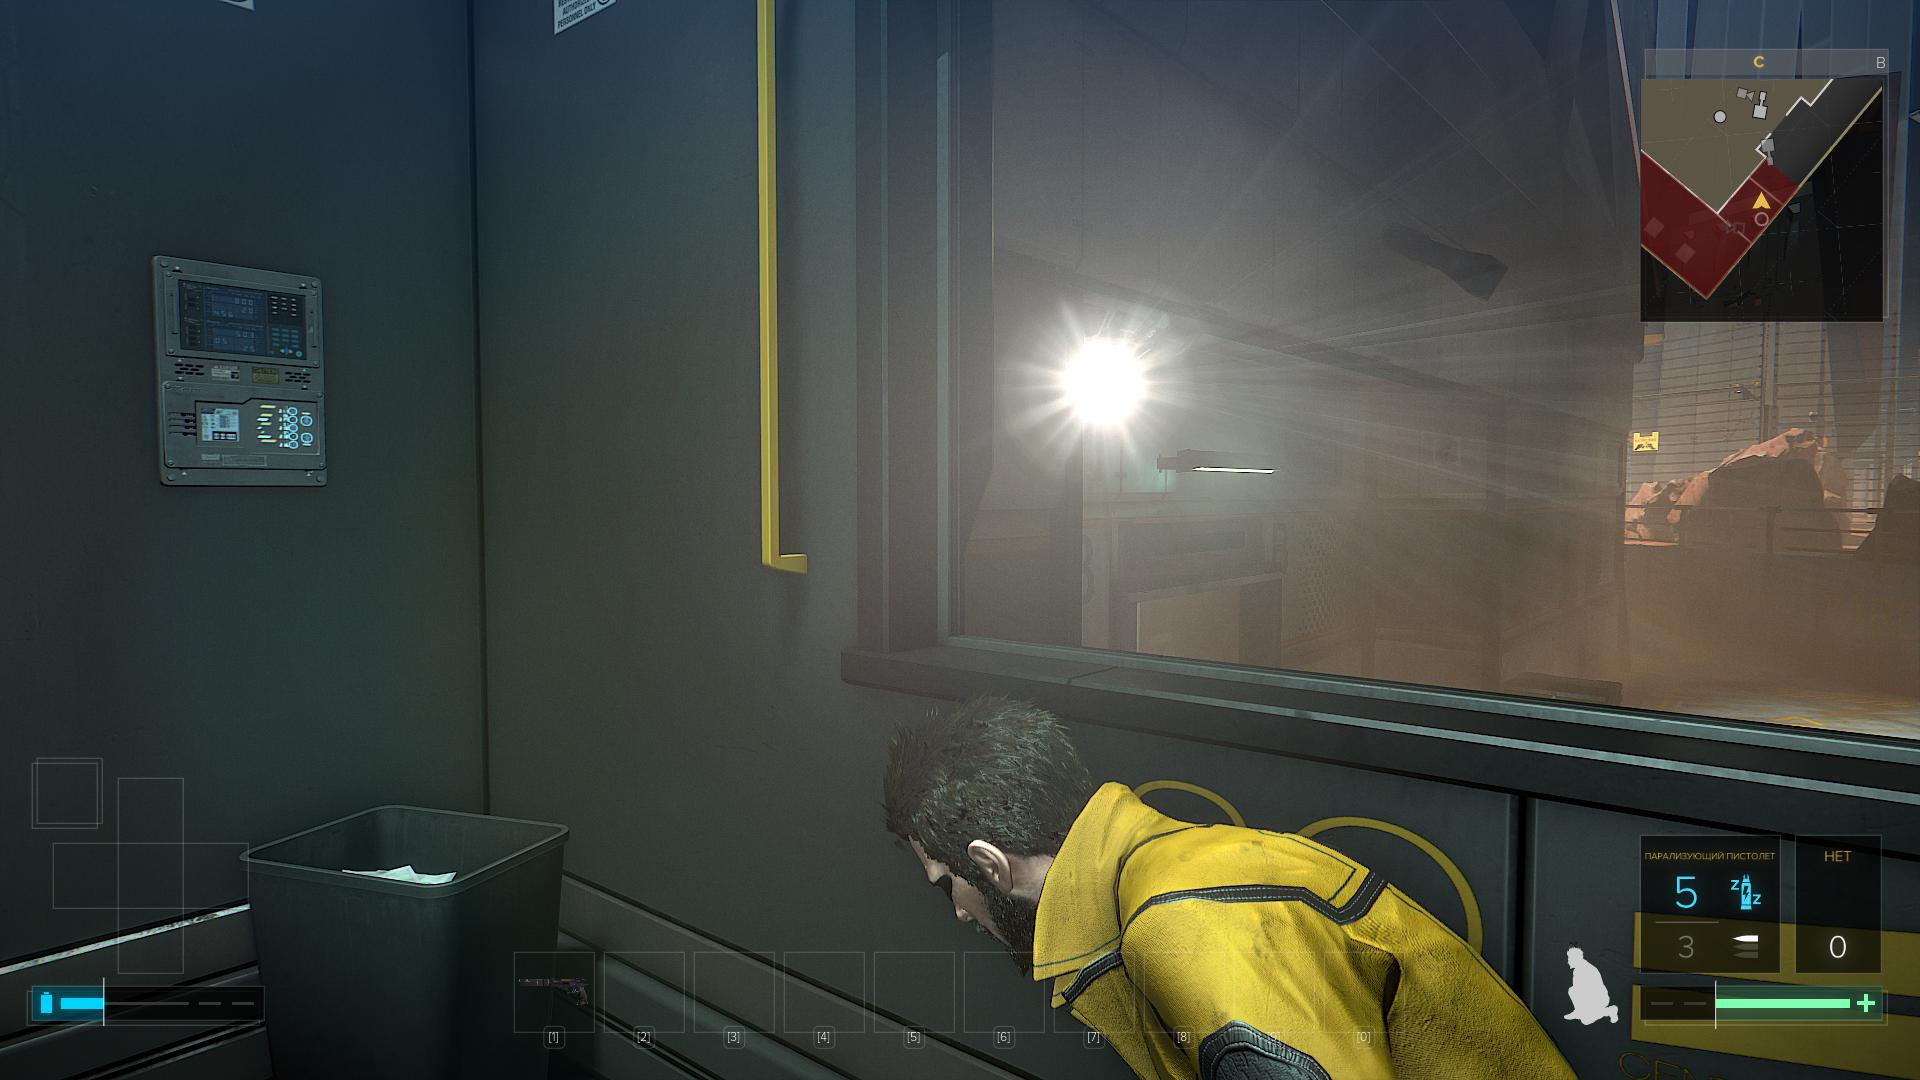 000373.Jpg - Deus Ex: Mankind Divided